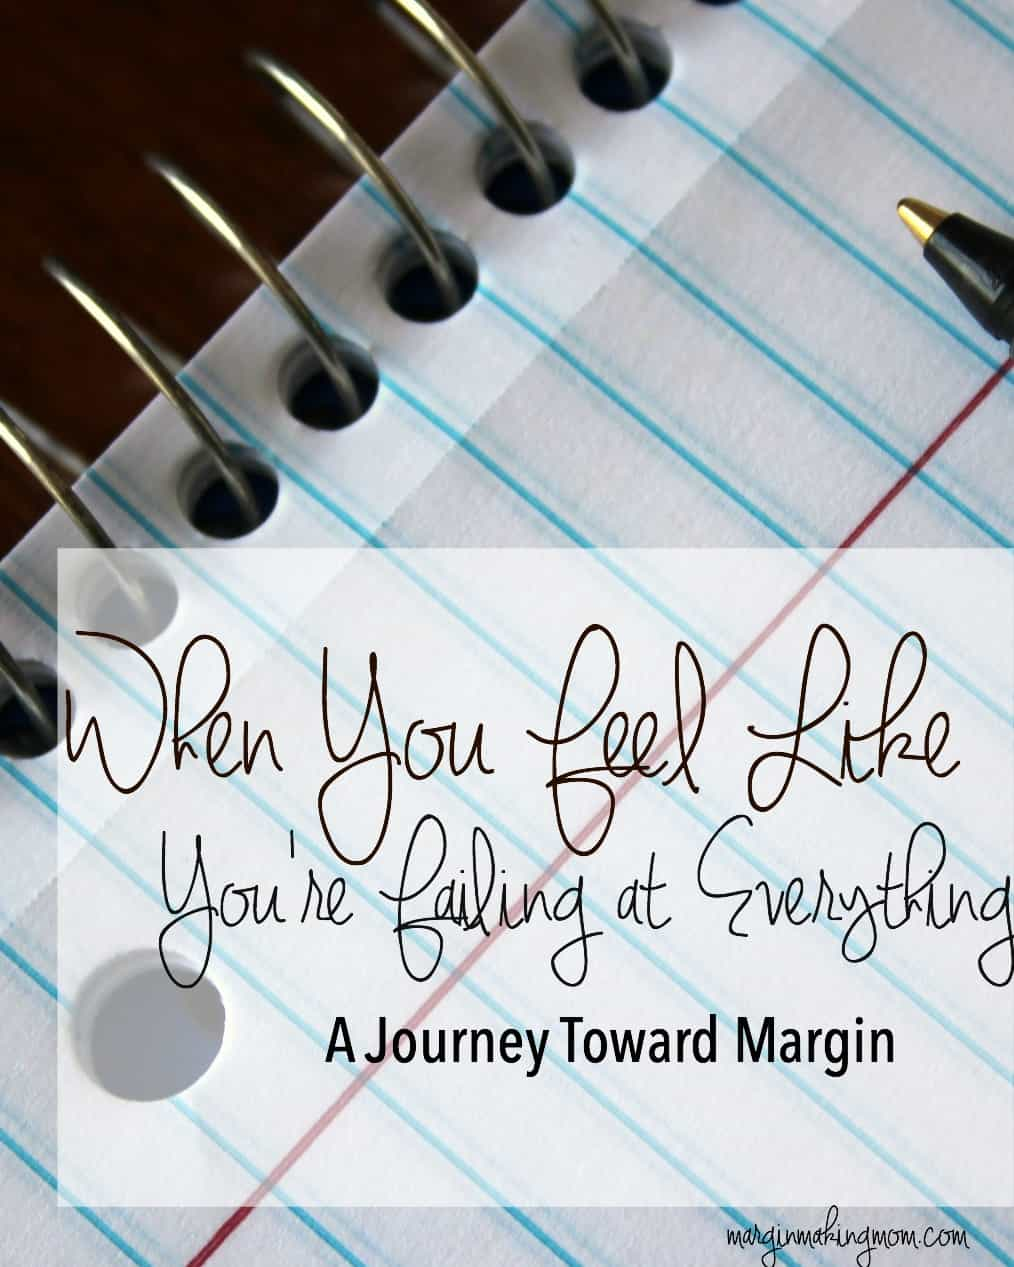 Feeling overwhelmed or like a failure? Check out this perspective on finding margin in life.